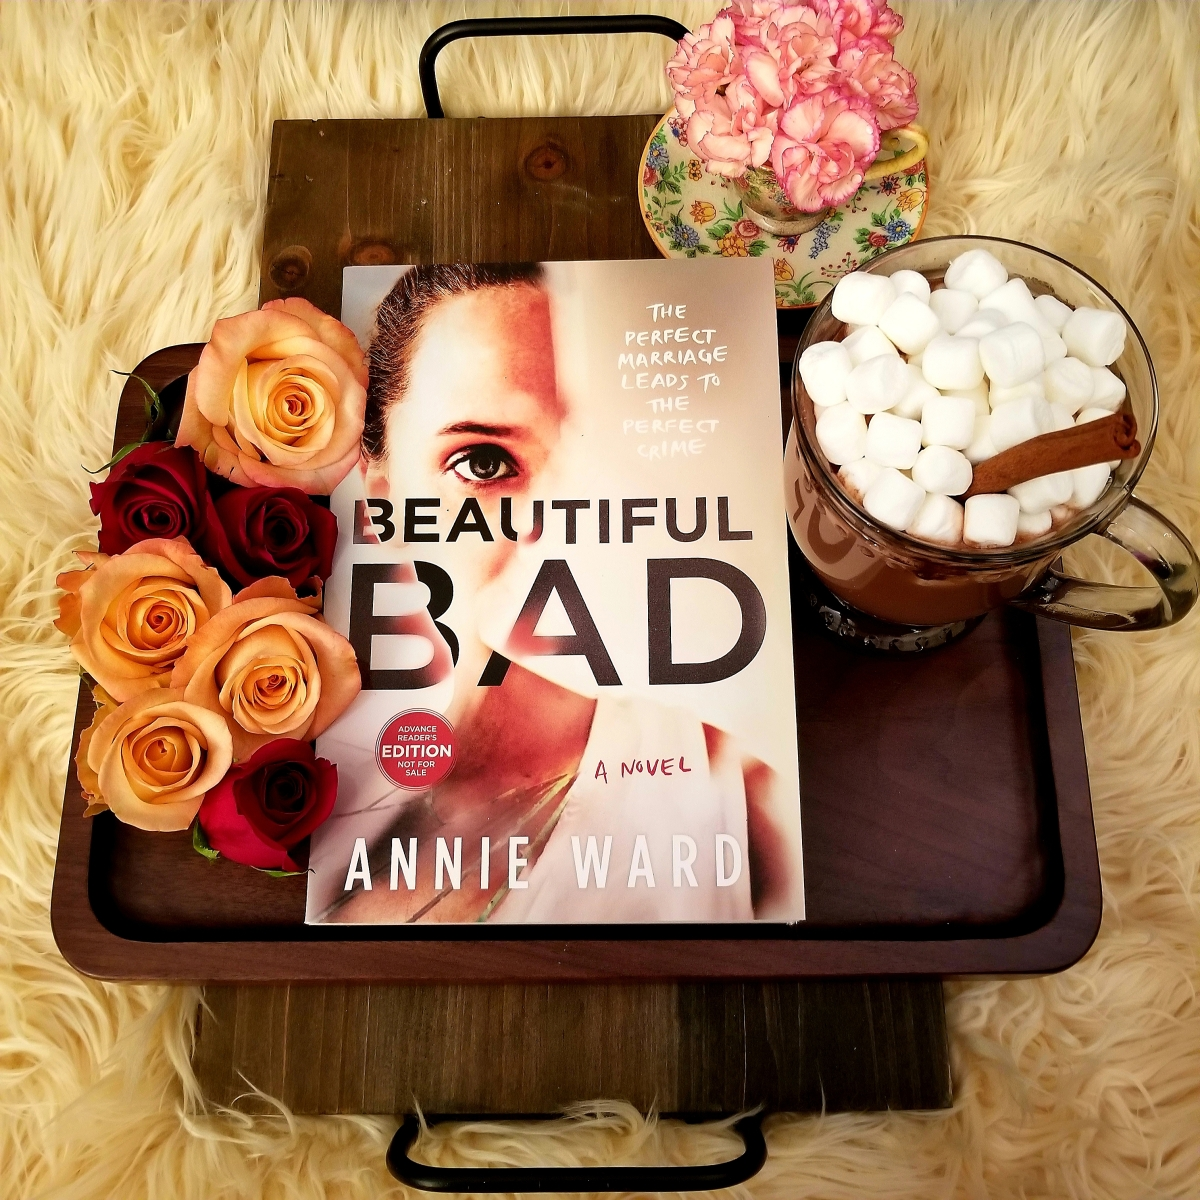 Beautiful Bad by Annie Ward #bookreview #tarheelreader #thrbeautifulbad @_annie_ward @harlequinbooks @tlcbooktours #beautifulbad #blogtour